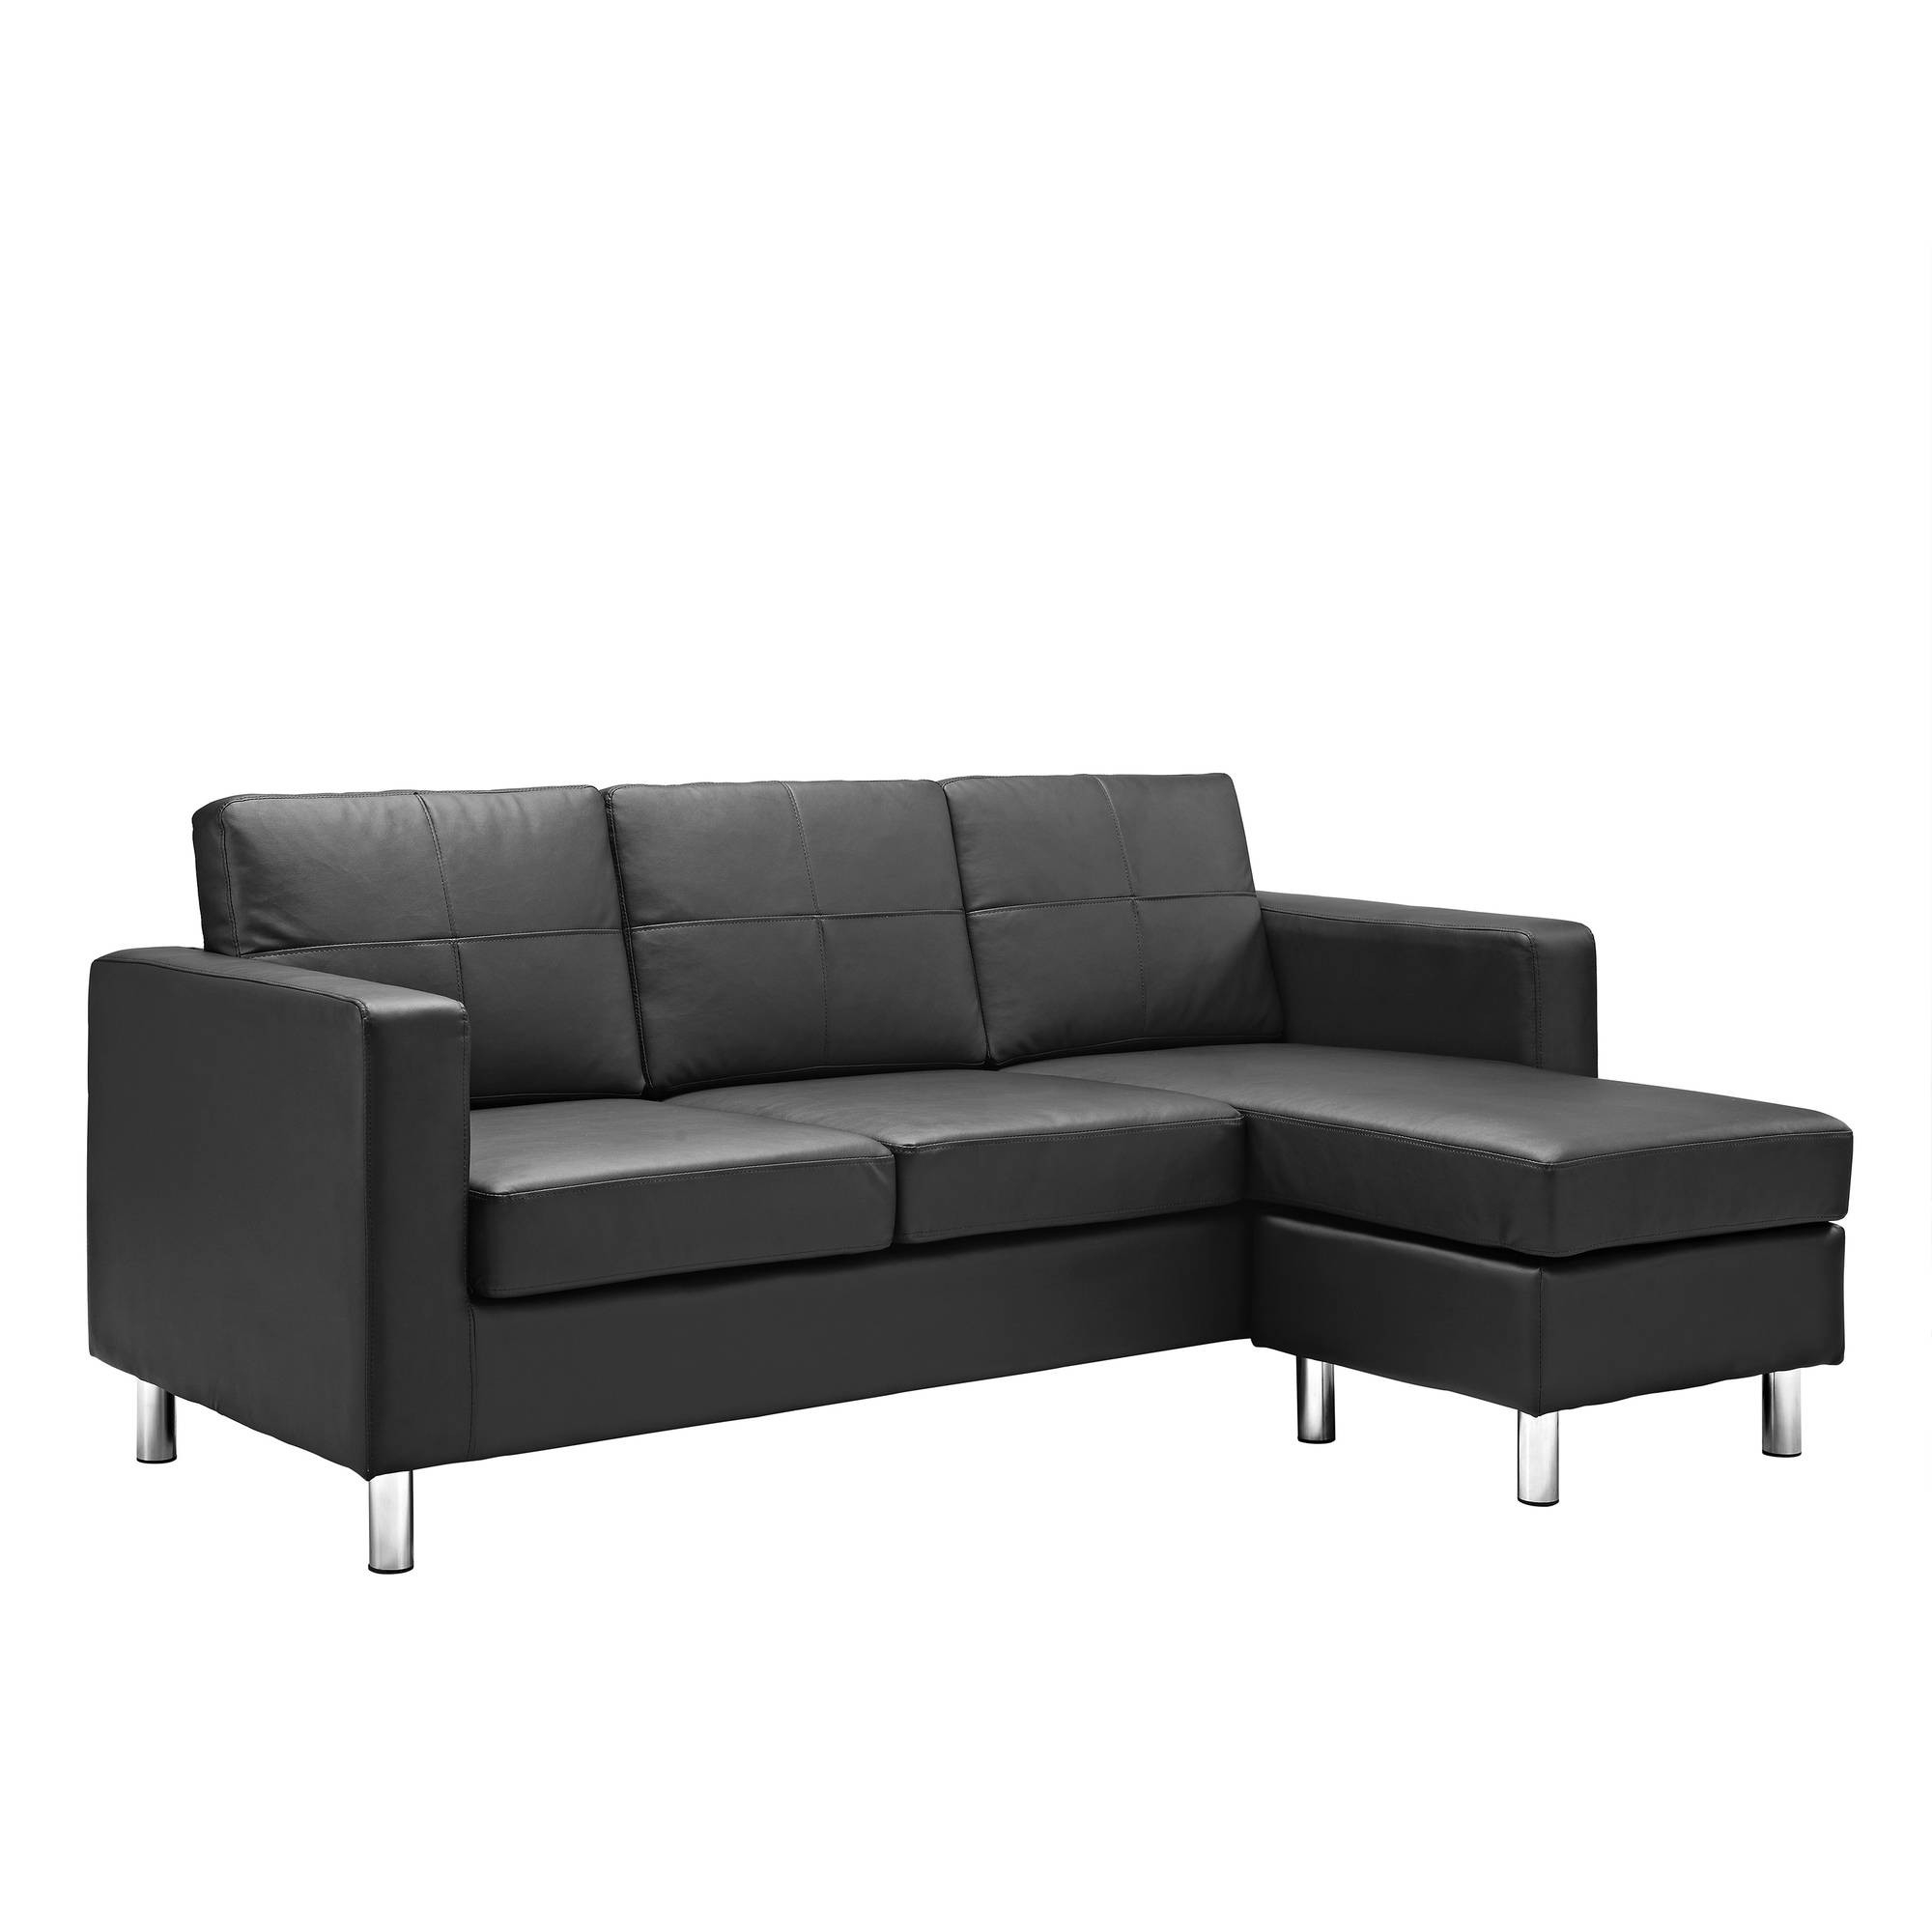 Fresh Gray Sectional Sofa Walmart – Mediasupload Inside Sectional Sofas At Walmart (View 6 of 10)